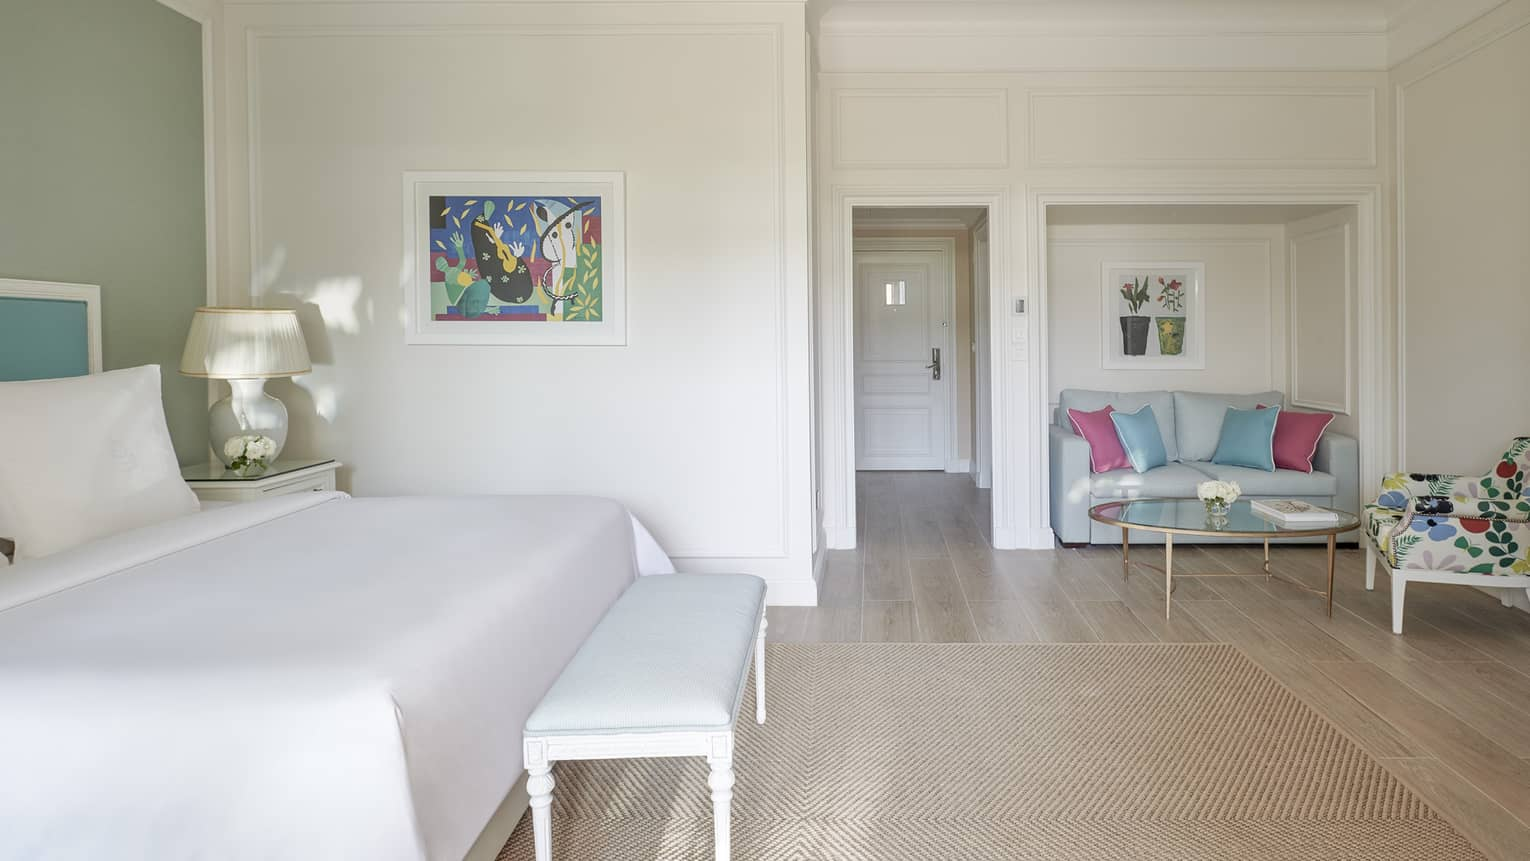 White room, white bed with blue headboard on green wall, foot bench, wood floor, seating area